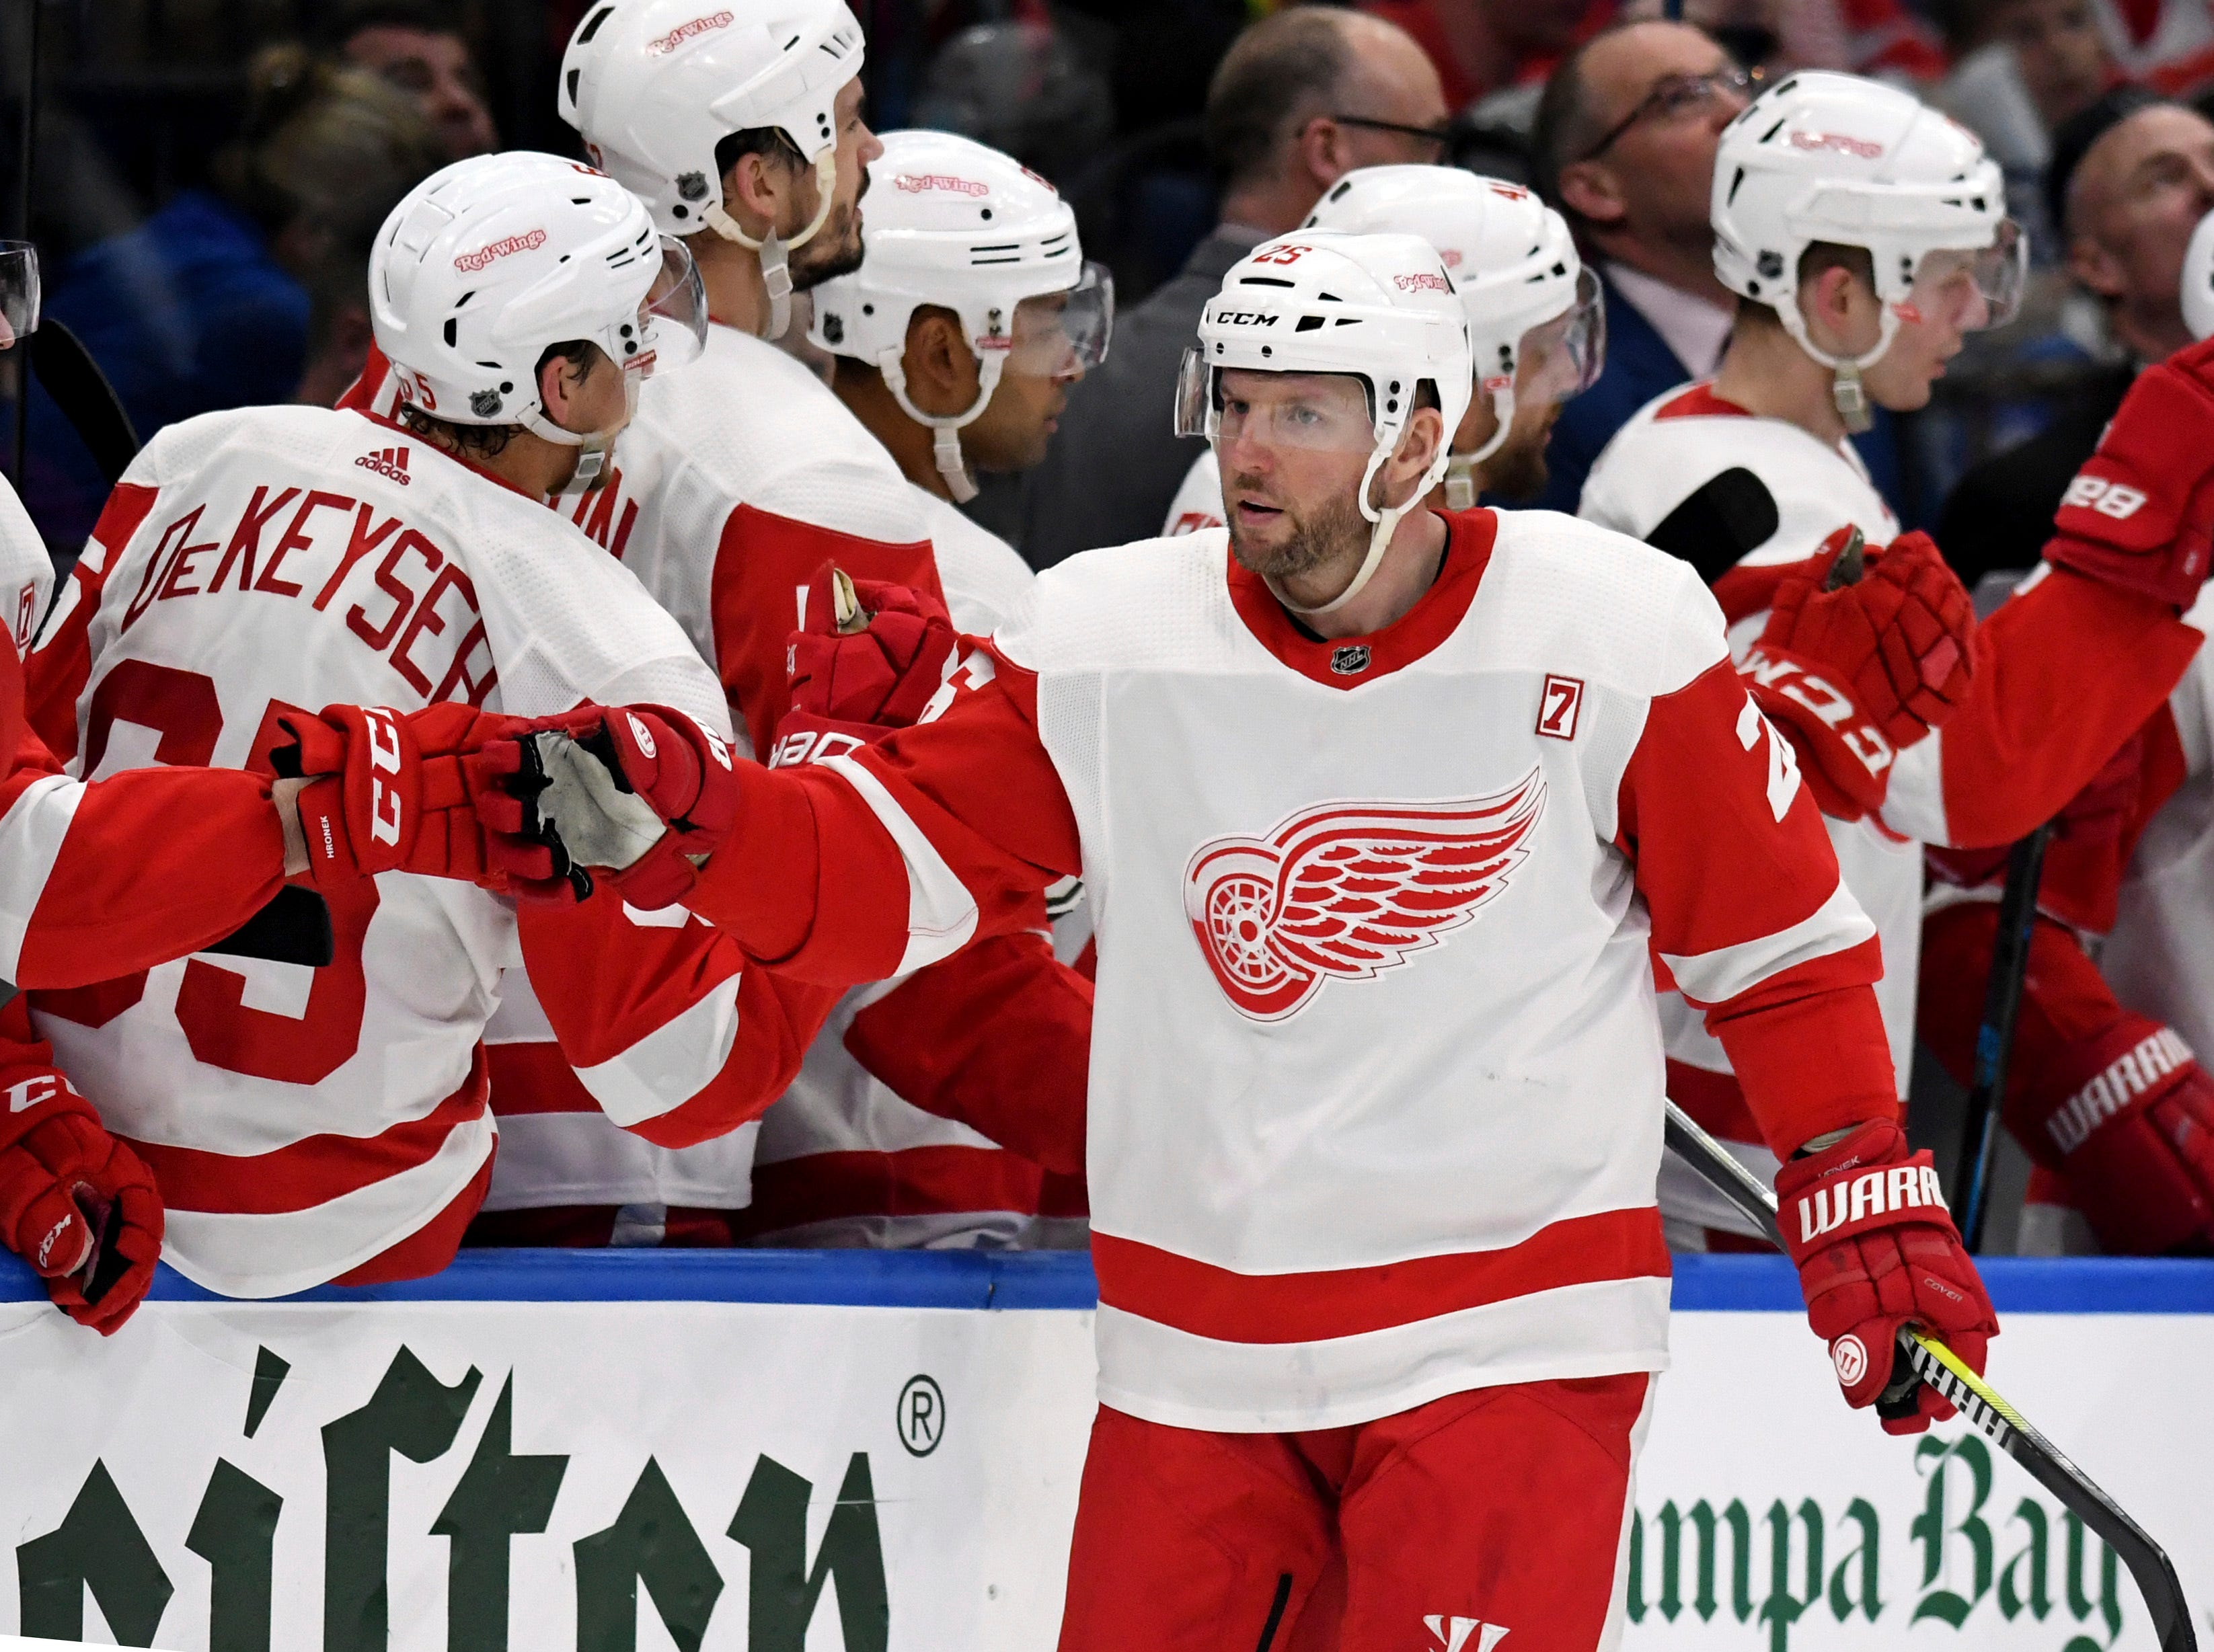 Detroit Red Wings left wing Thomas Vanek (26) celebrates his second period goal during an NHL hockey game against the Tampa Bay Lightning Saturday, March 9, 2019, in Tampa, Fla. (AP Photo/Jason Behnken)